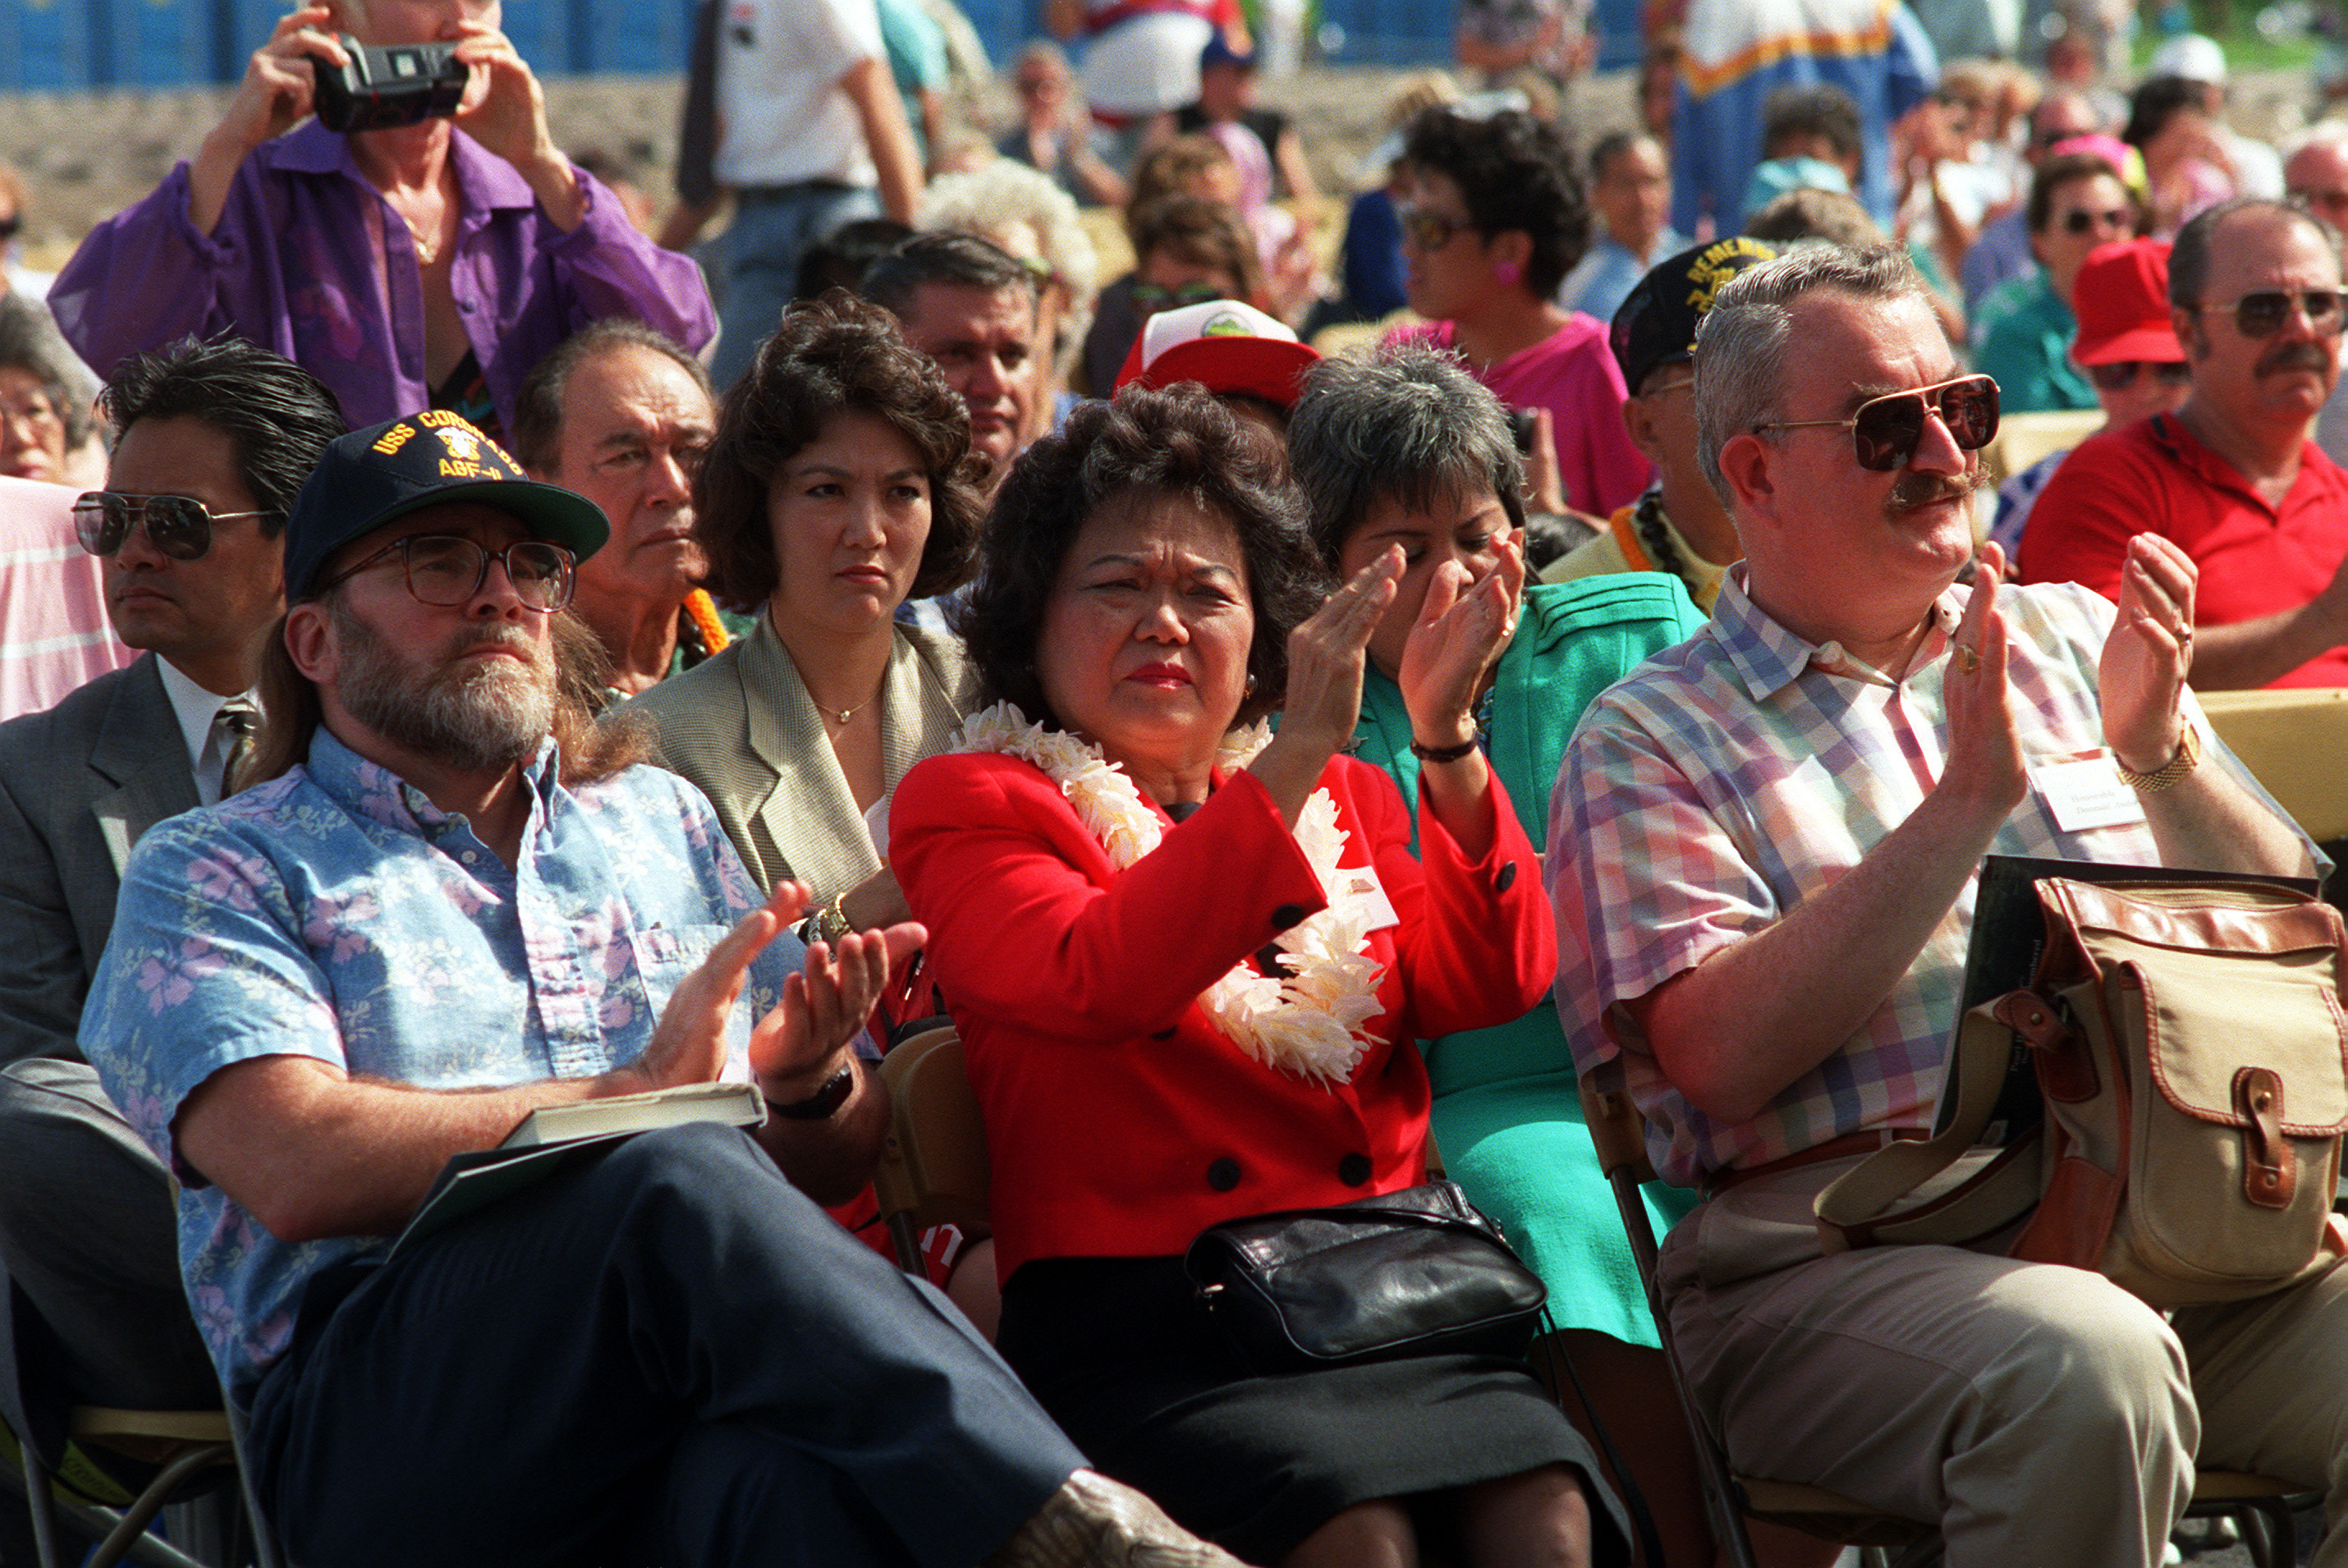 Patsy Mink Would Be 'Proud' of Women's Strides